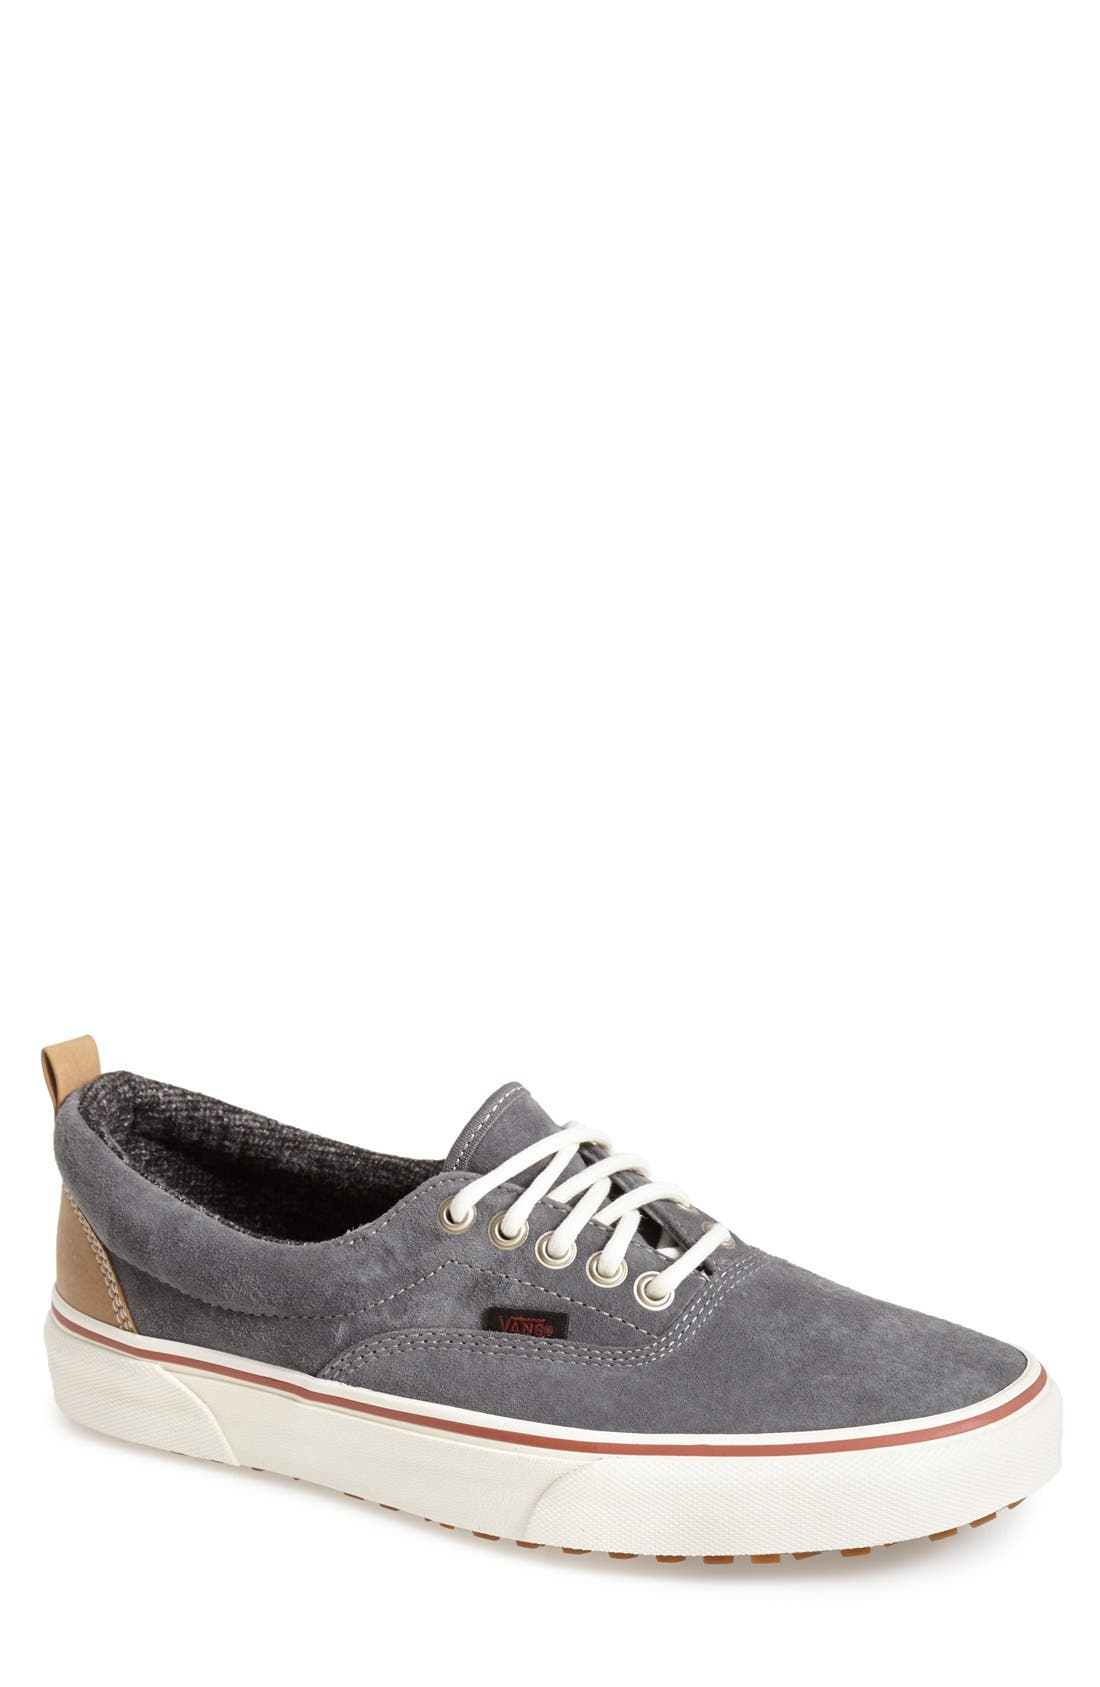 'Era MTE' Sneaker, Main, color, 030